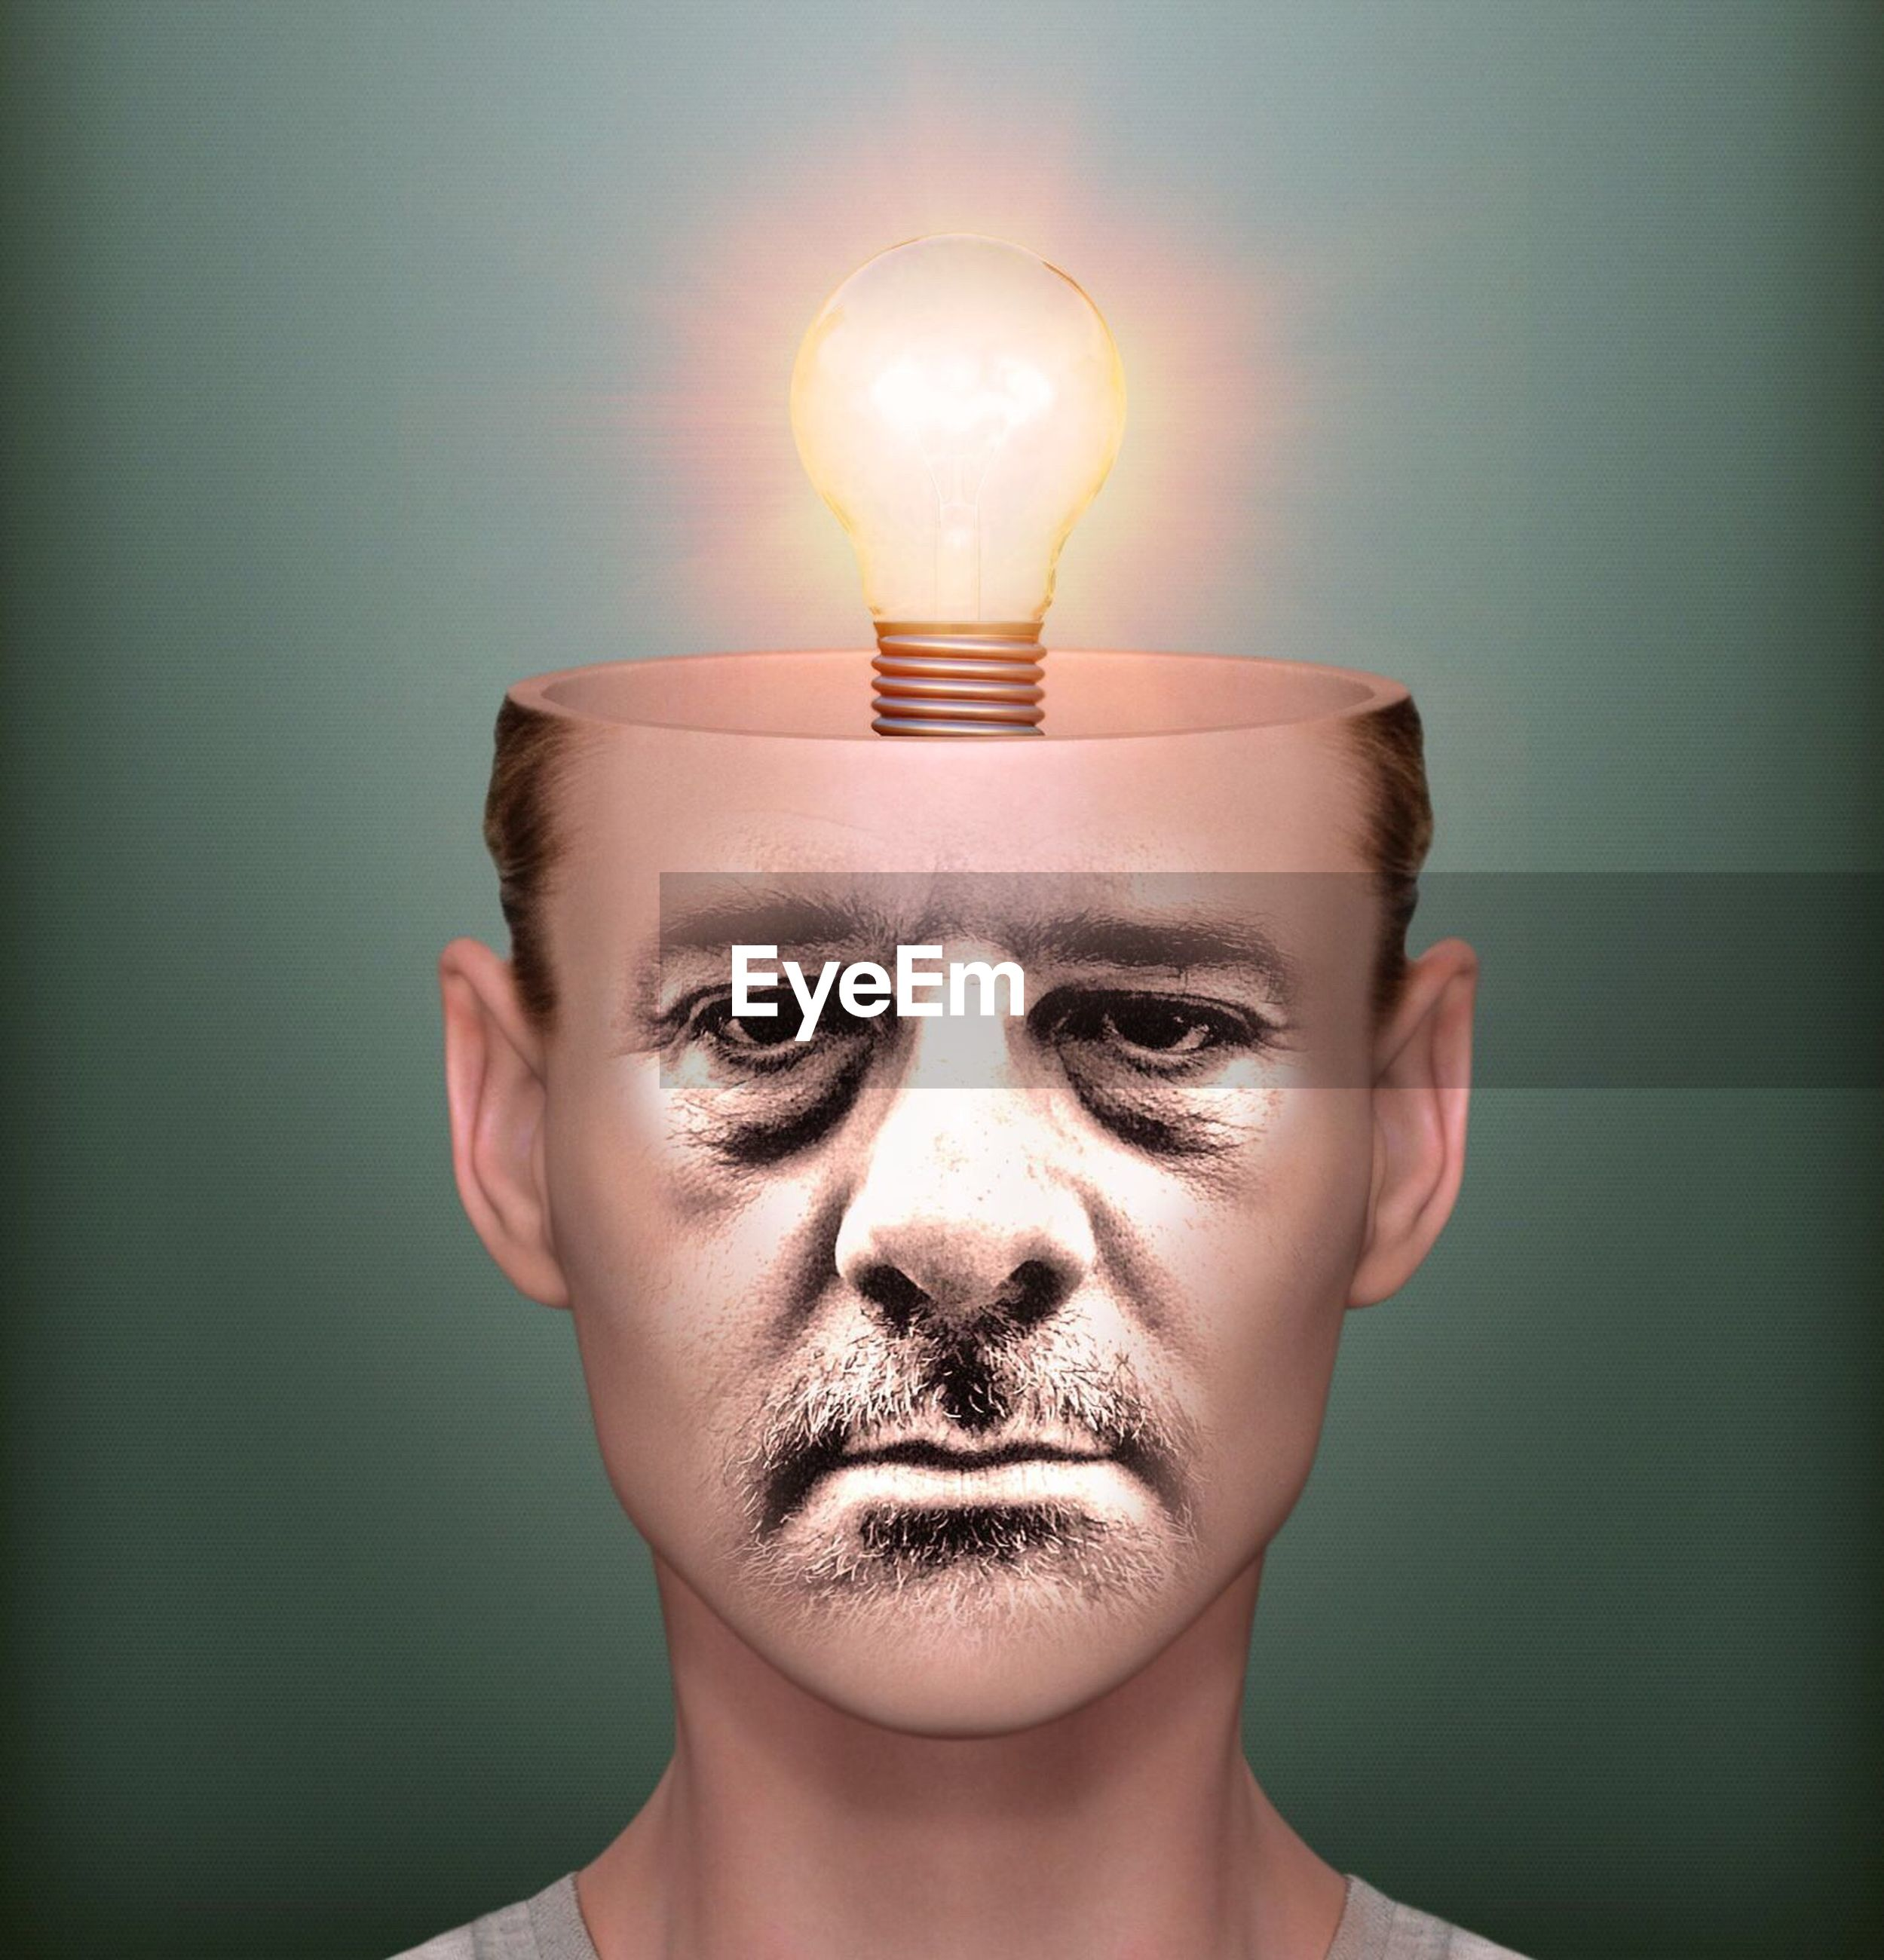 human body part, innovation, lighting equipment, human face, power supply, electricity, change, light bulb, adults only, adult, close-up, people, young adult